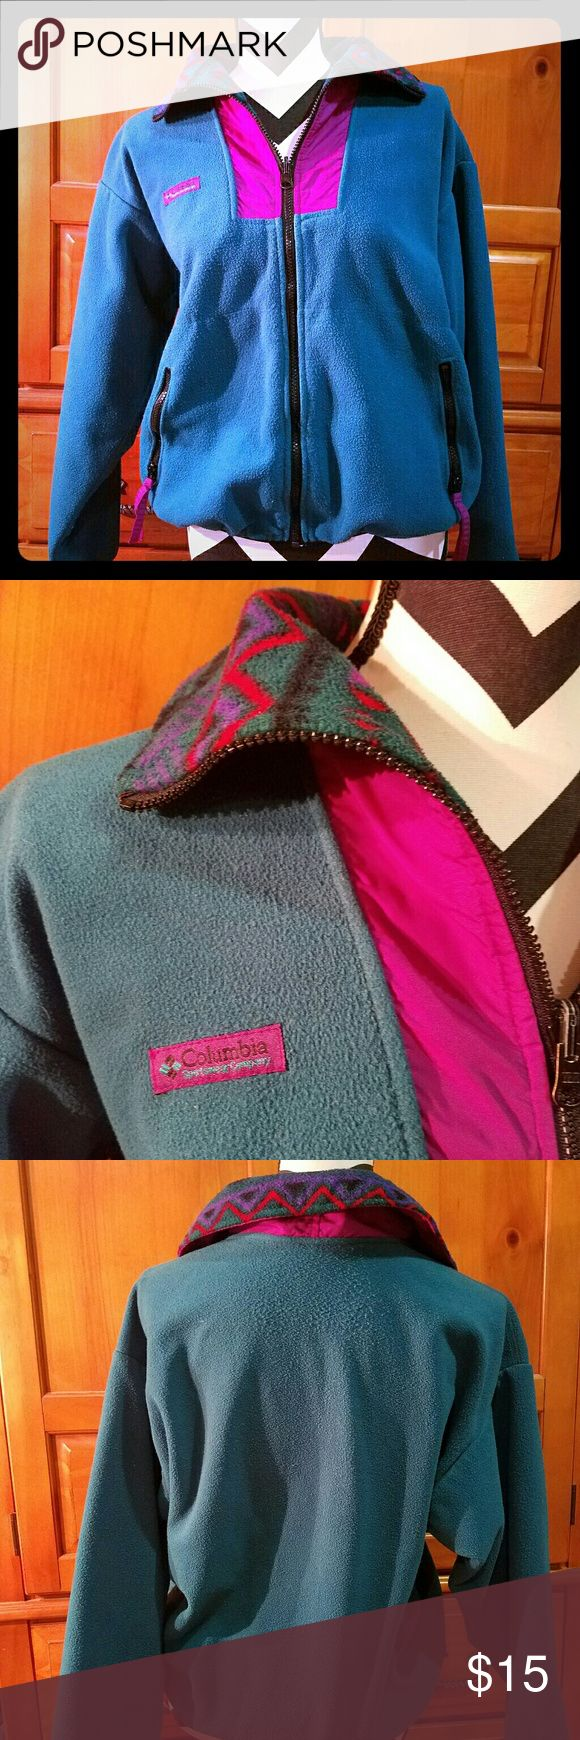 Vintage Tribal Aztec Zip Up Columbia size Medium size medium vintage Columbia zip up sweater.  It is a green/teal color.  There are two front zippered pockets.  The collar features an aztec tribal design.  This sweater is vintage and well loved, there are signs of normal wear and tear.  Please see the photos.  There are no rips or stains.  This comes from a smoke free home. Columbia Sweaters